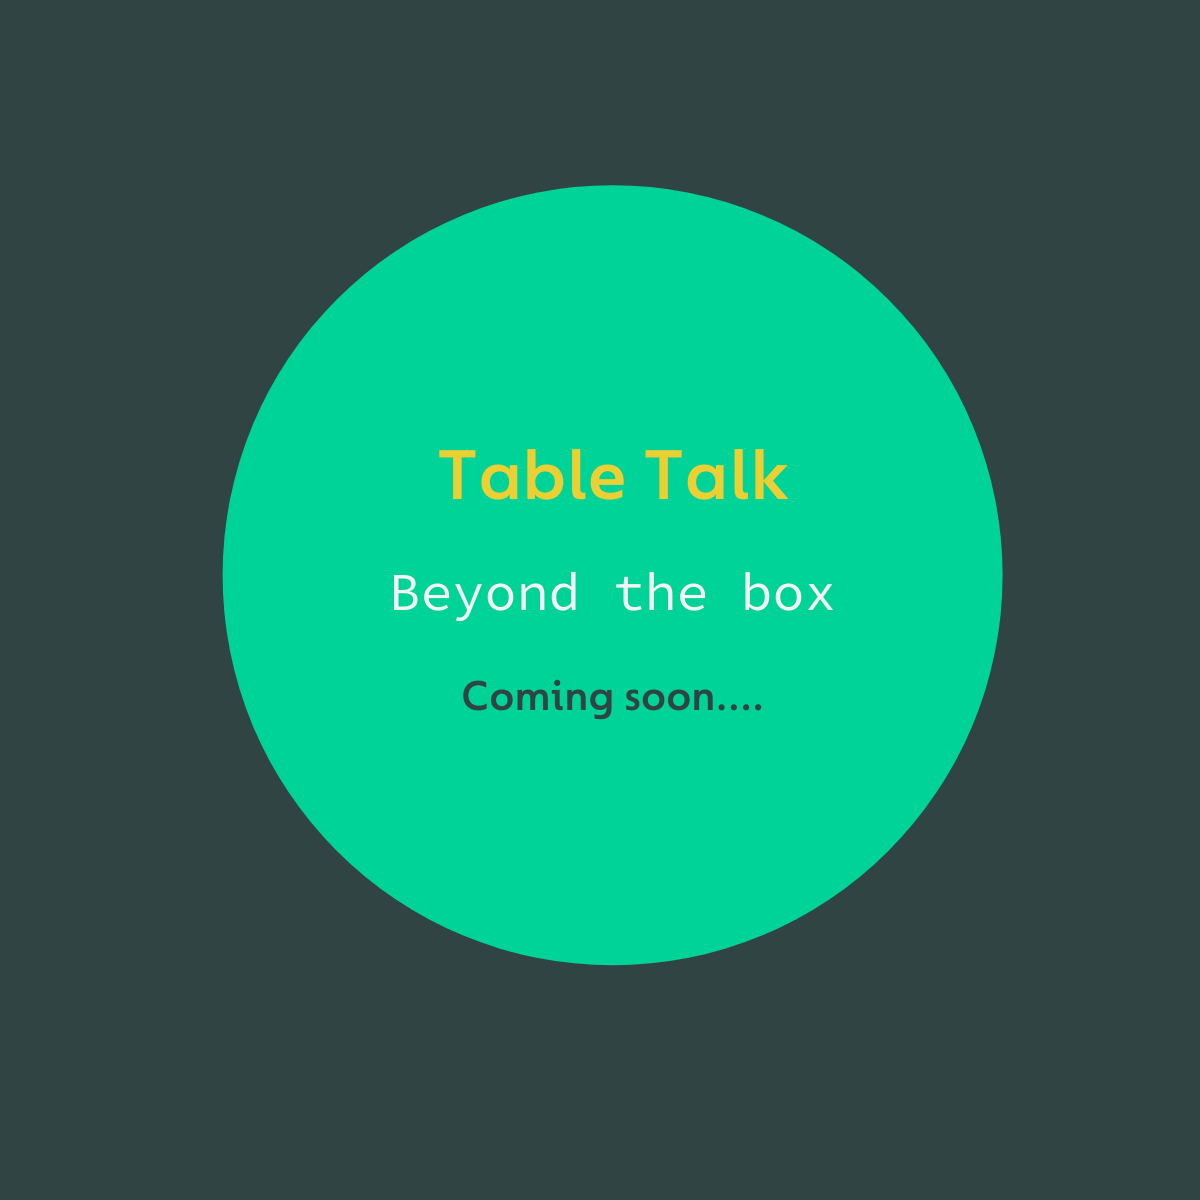 Thumbnail image or logo for the Table Talk event